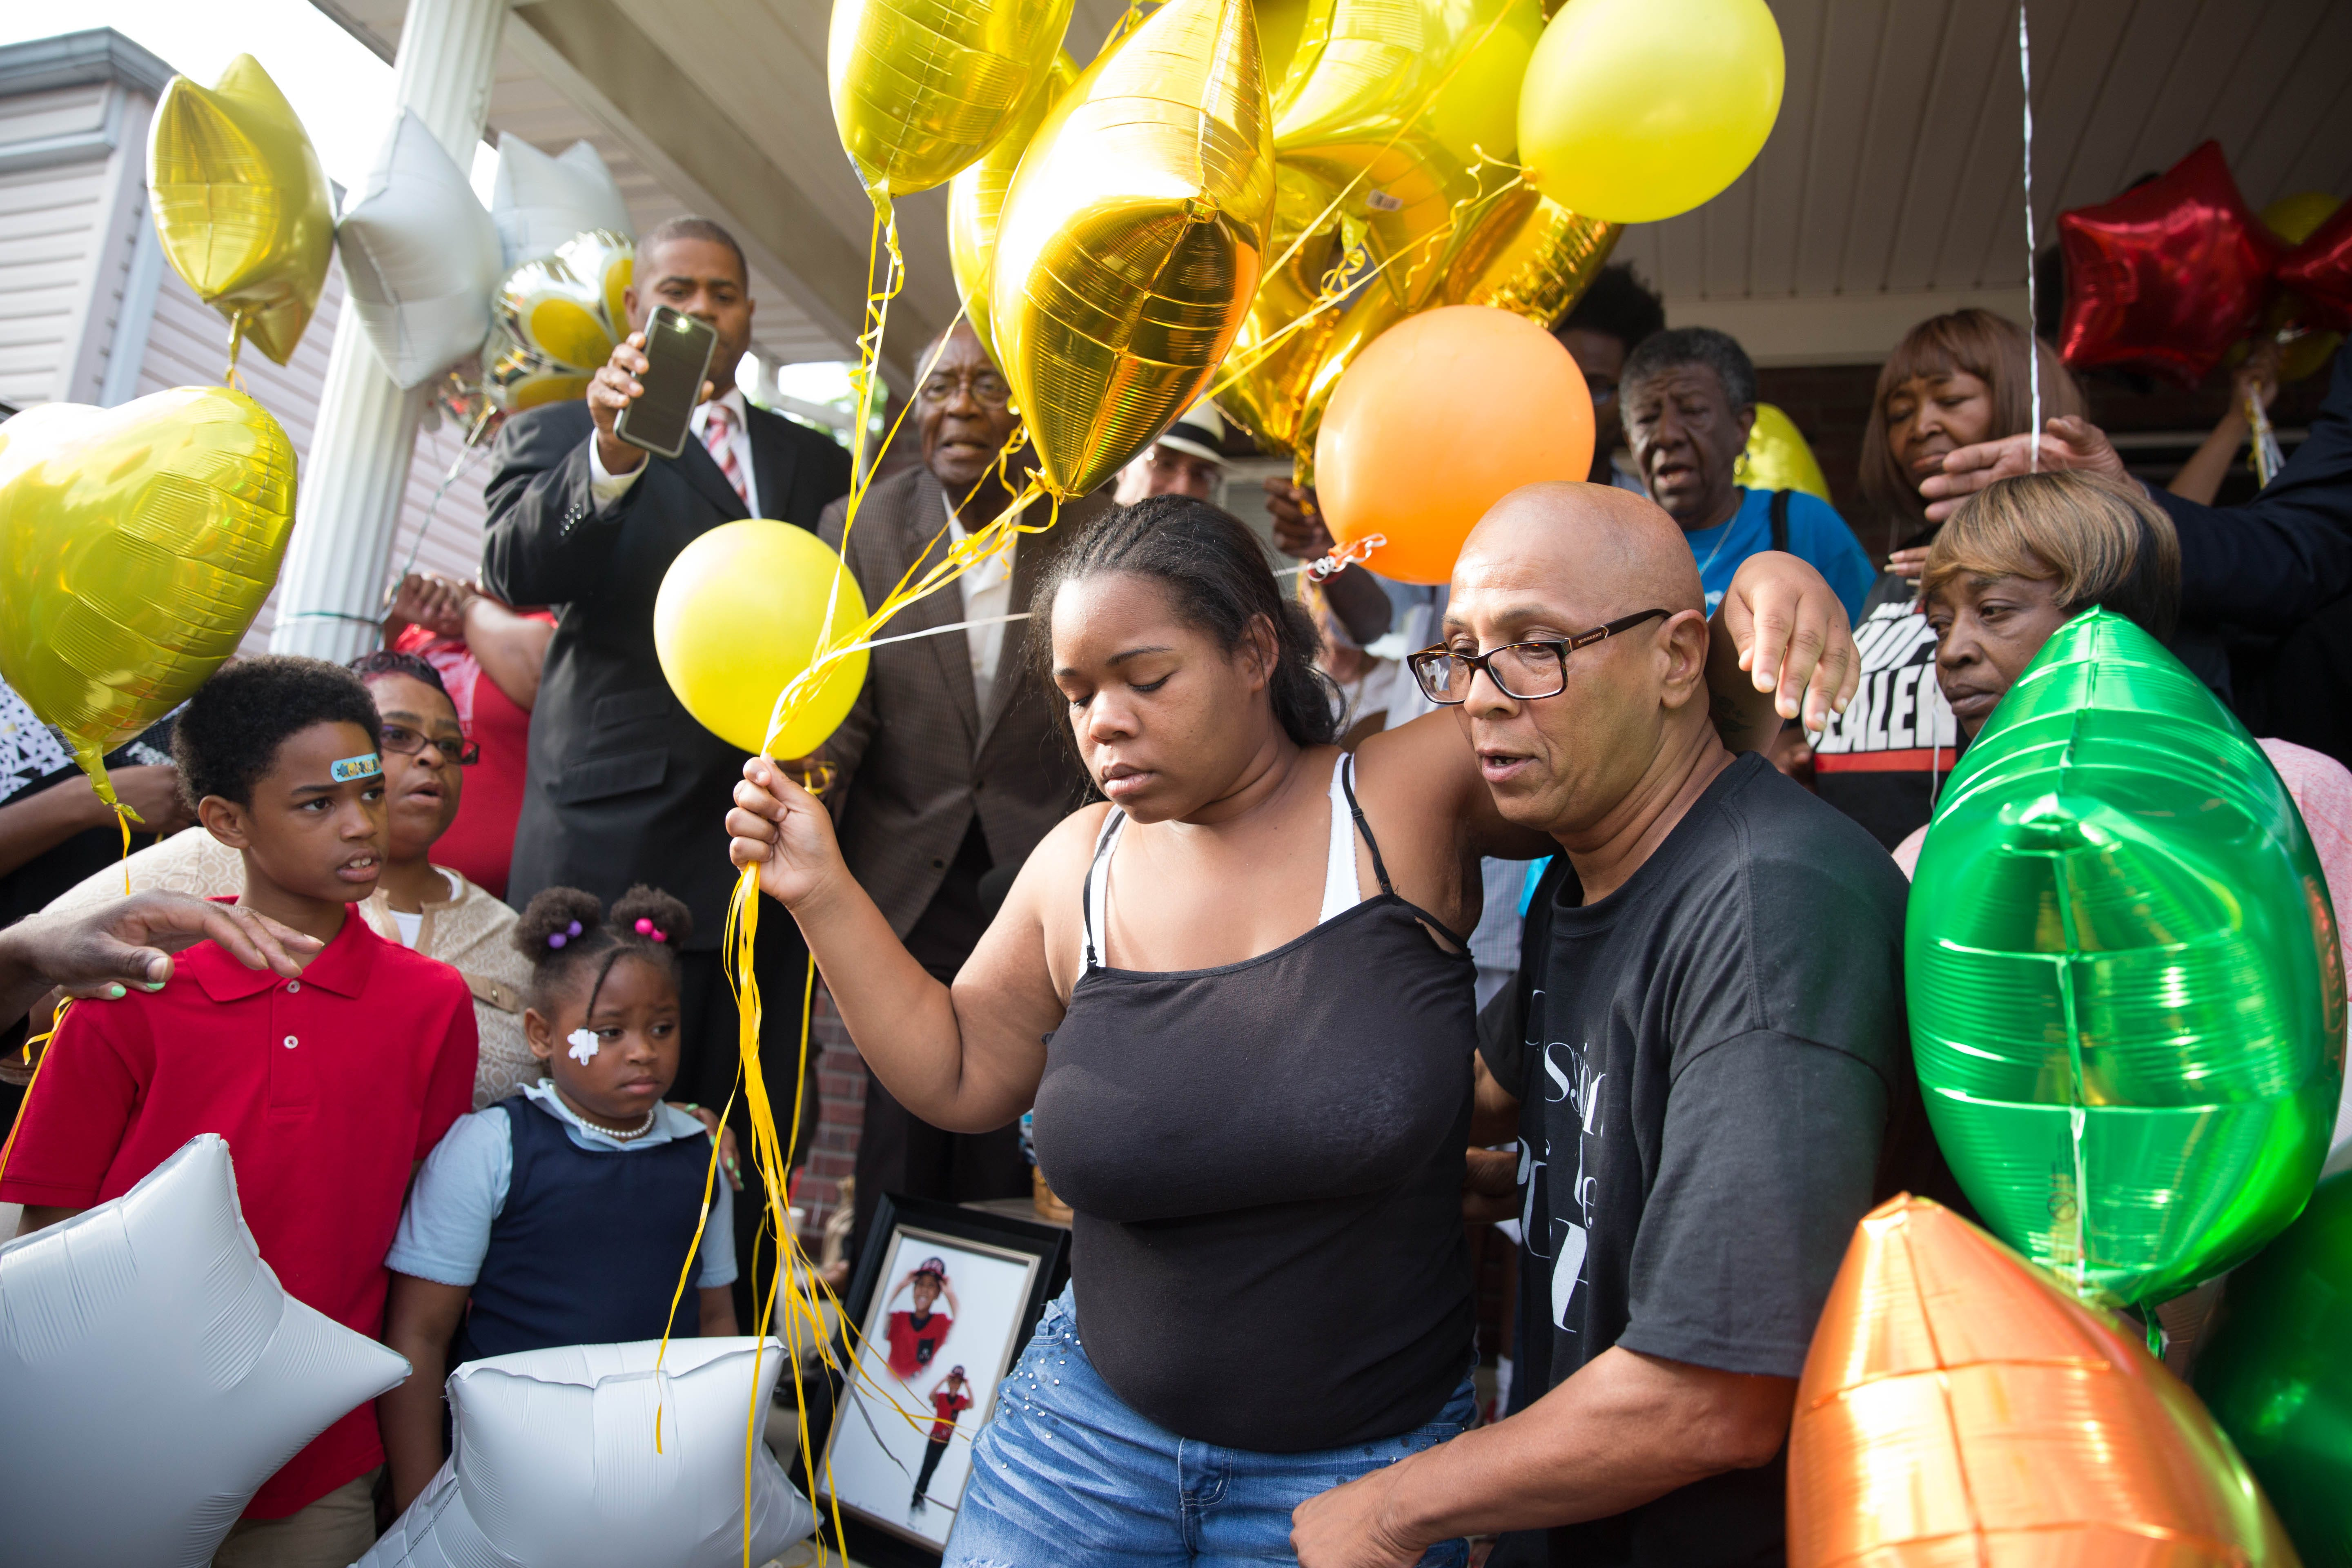 Christopher 2X, right, peace and justice activist and longtime family friend of Dequante Hobbs Jr. and his family, holds onto mother, Michesia Norment, as she releases the first balloons into the sky in memorial of her son. May 23, 2017.